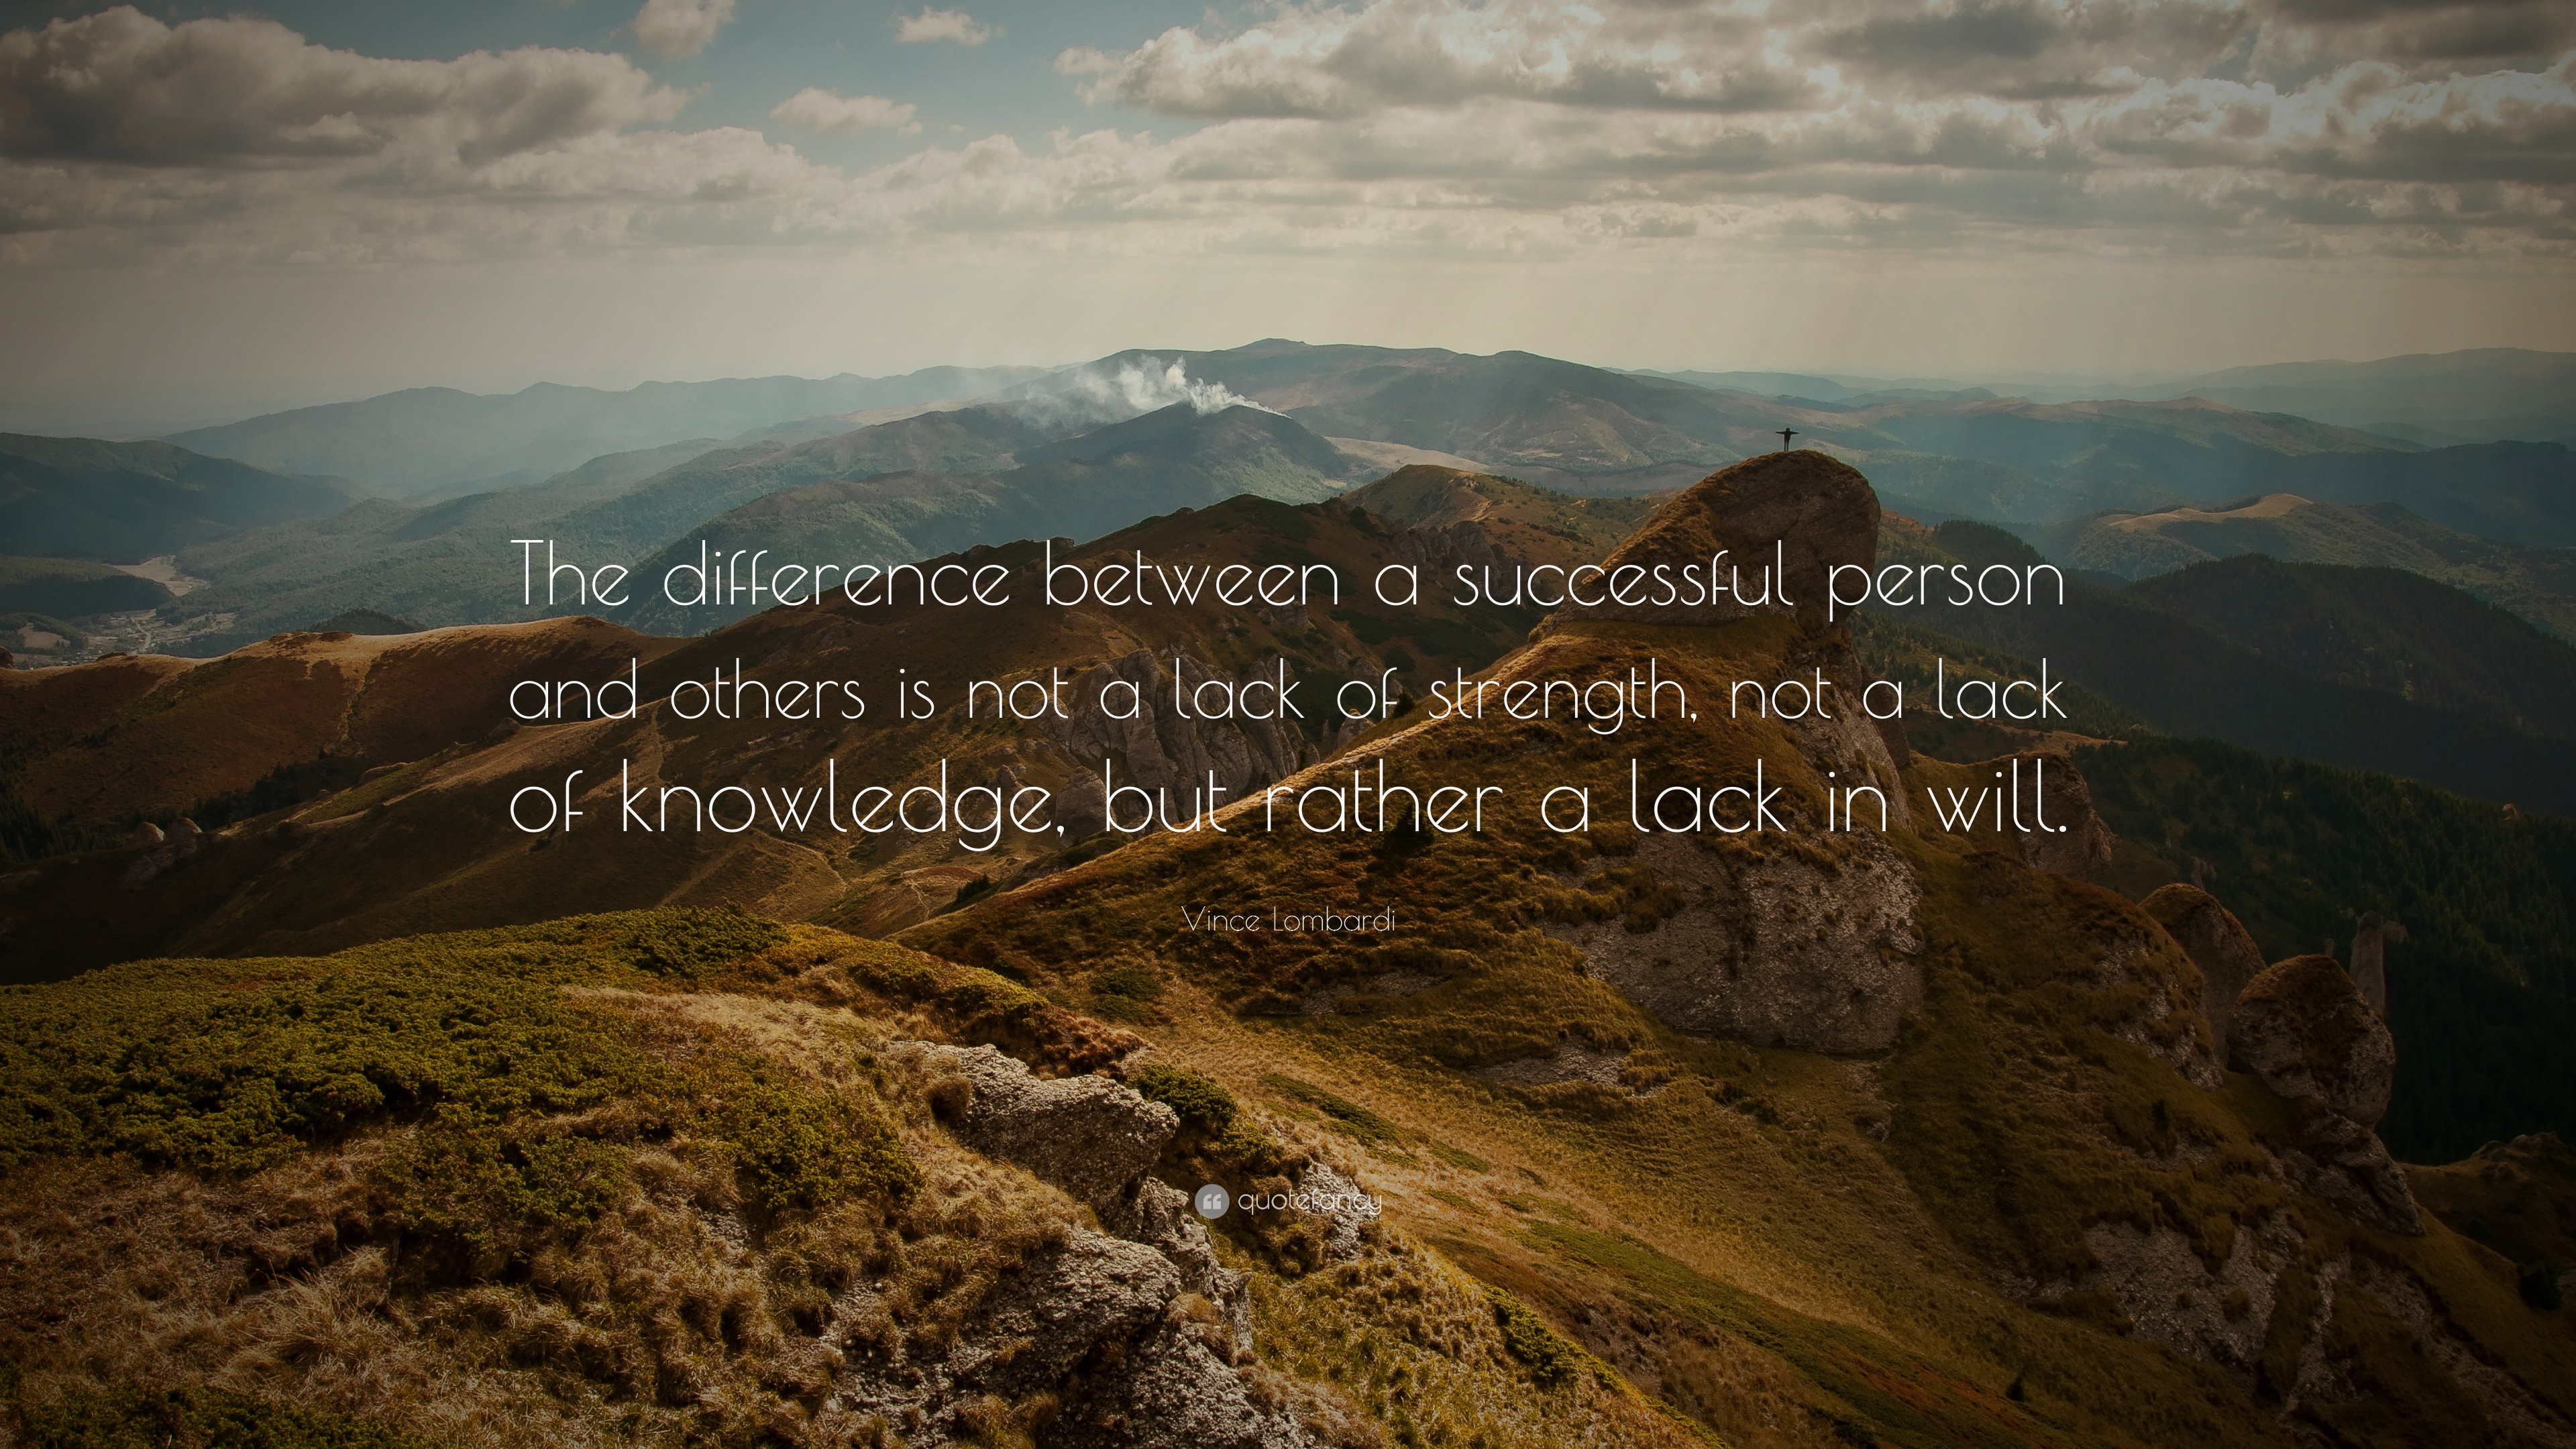 success quotes 52 quotefancy success quotes the difference between a successful person and others is not a lack